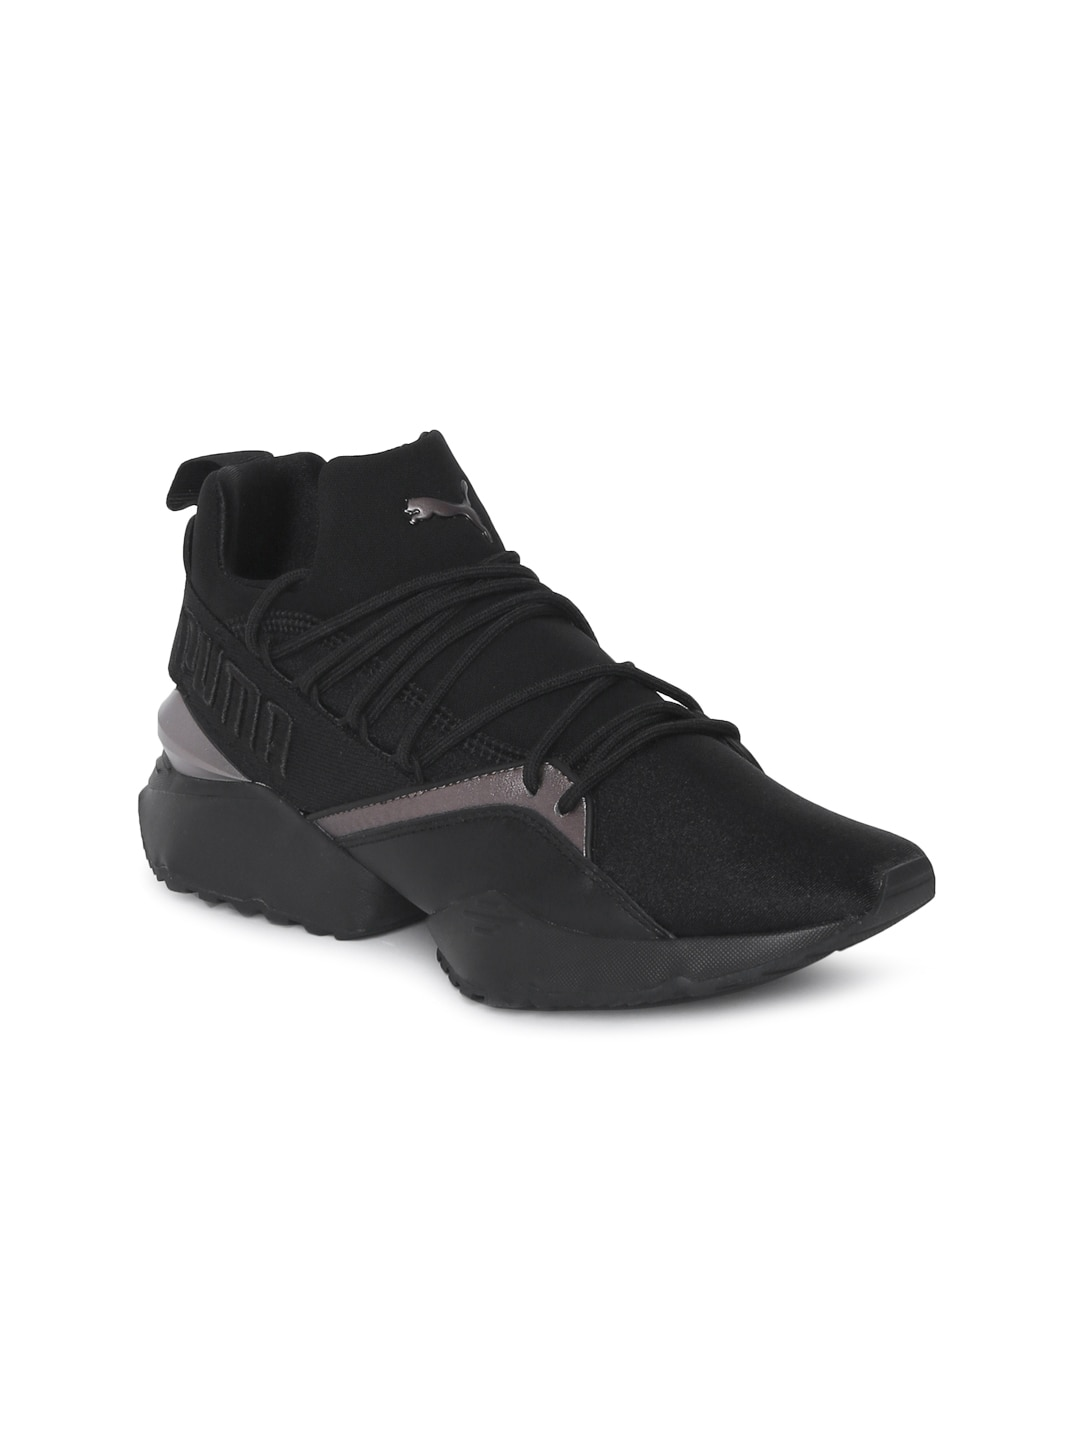 a6dd9f7beeef Puma Women Shoes - Buy Puma Women Shoes online in India